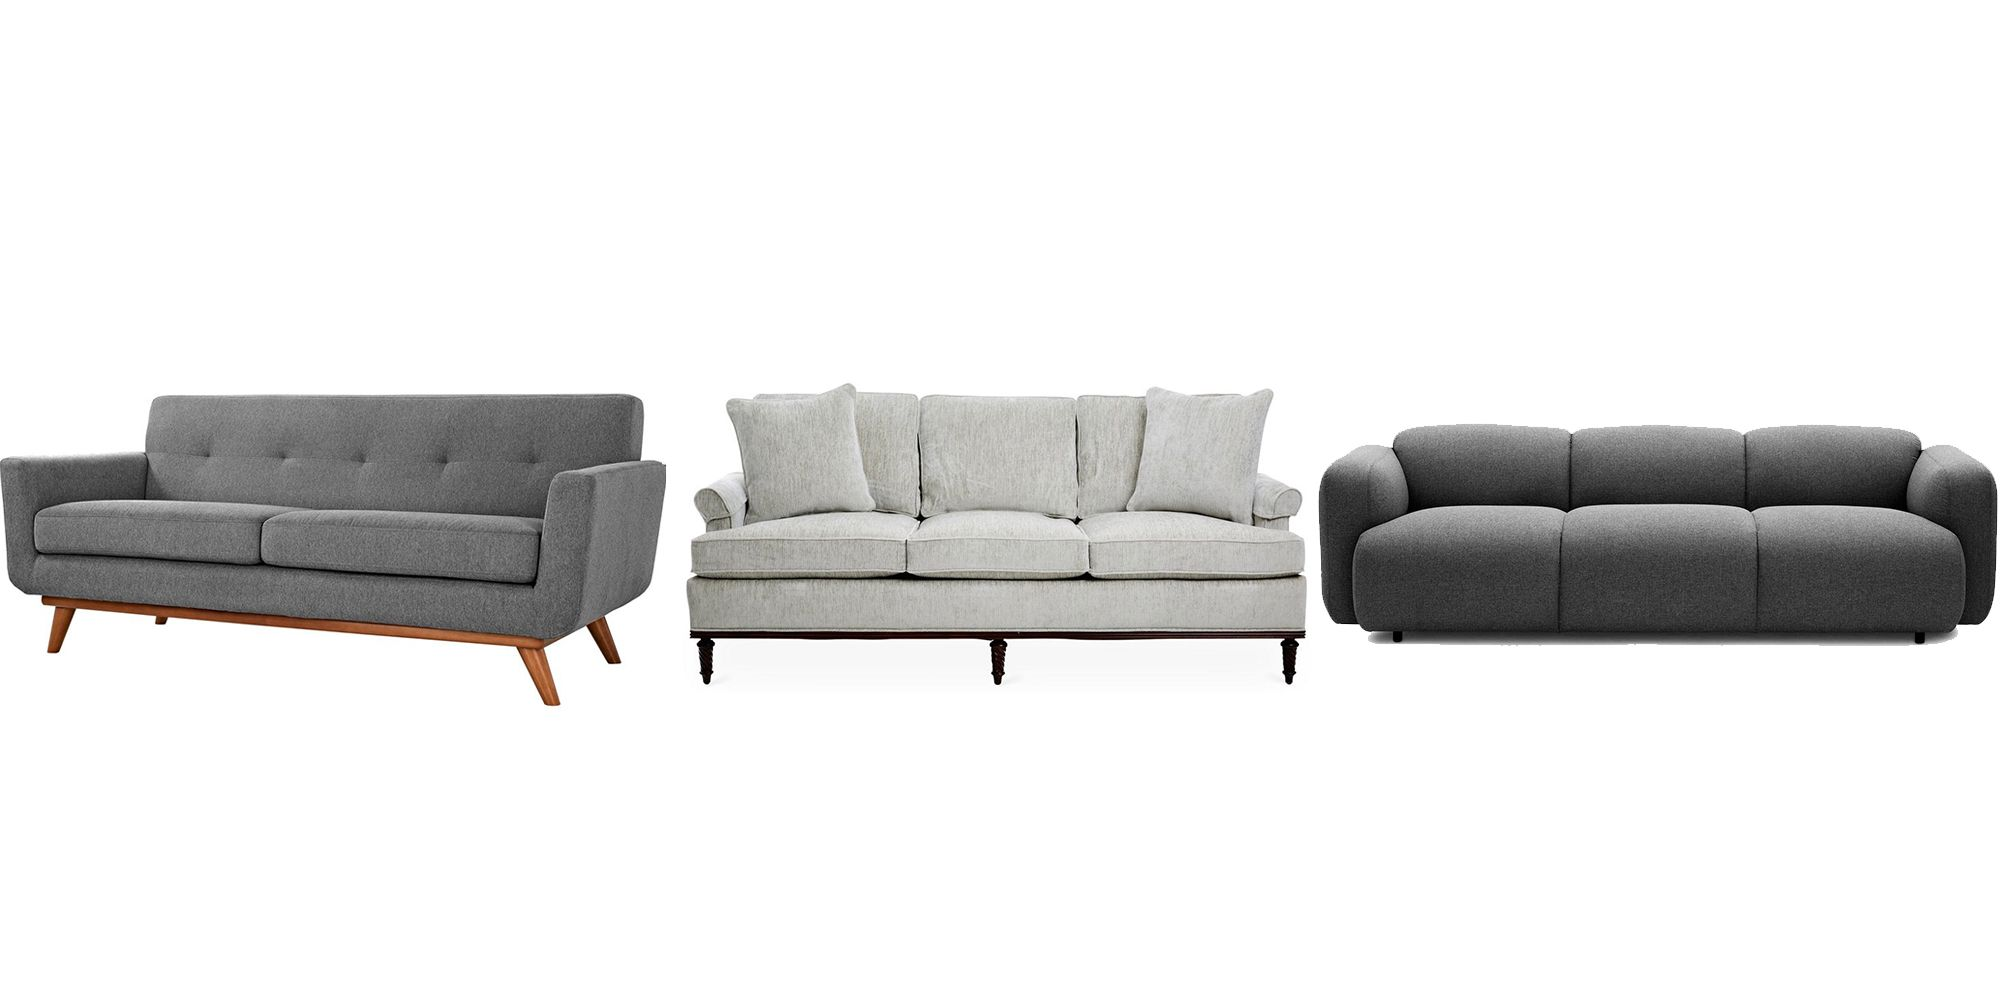 25 grey sofa ideas for living room grey couches for sale rh elledecor com grey sofas for sale uk grey sofas for sale dublin